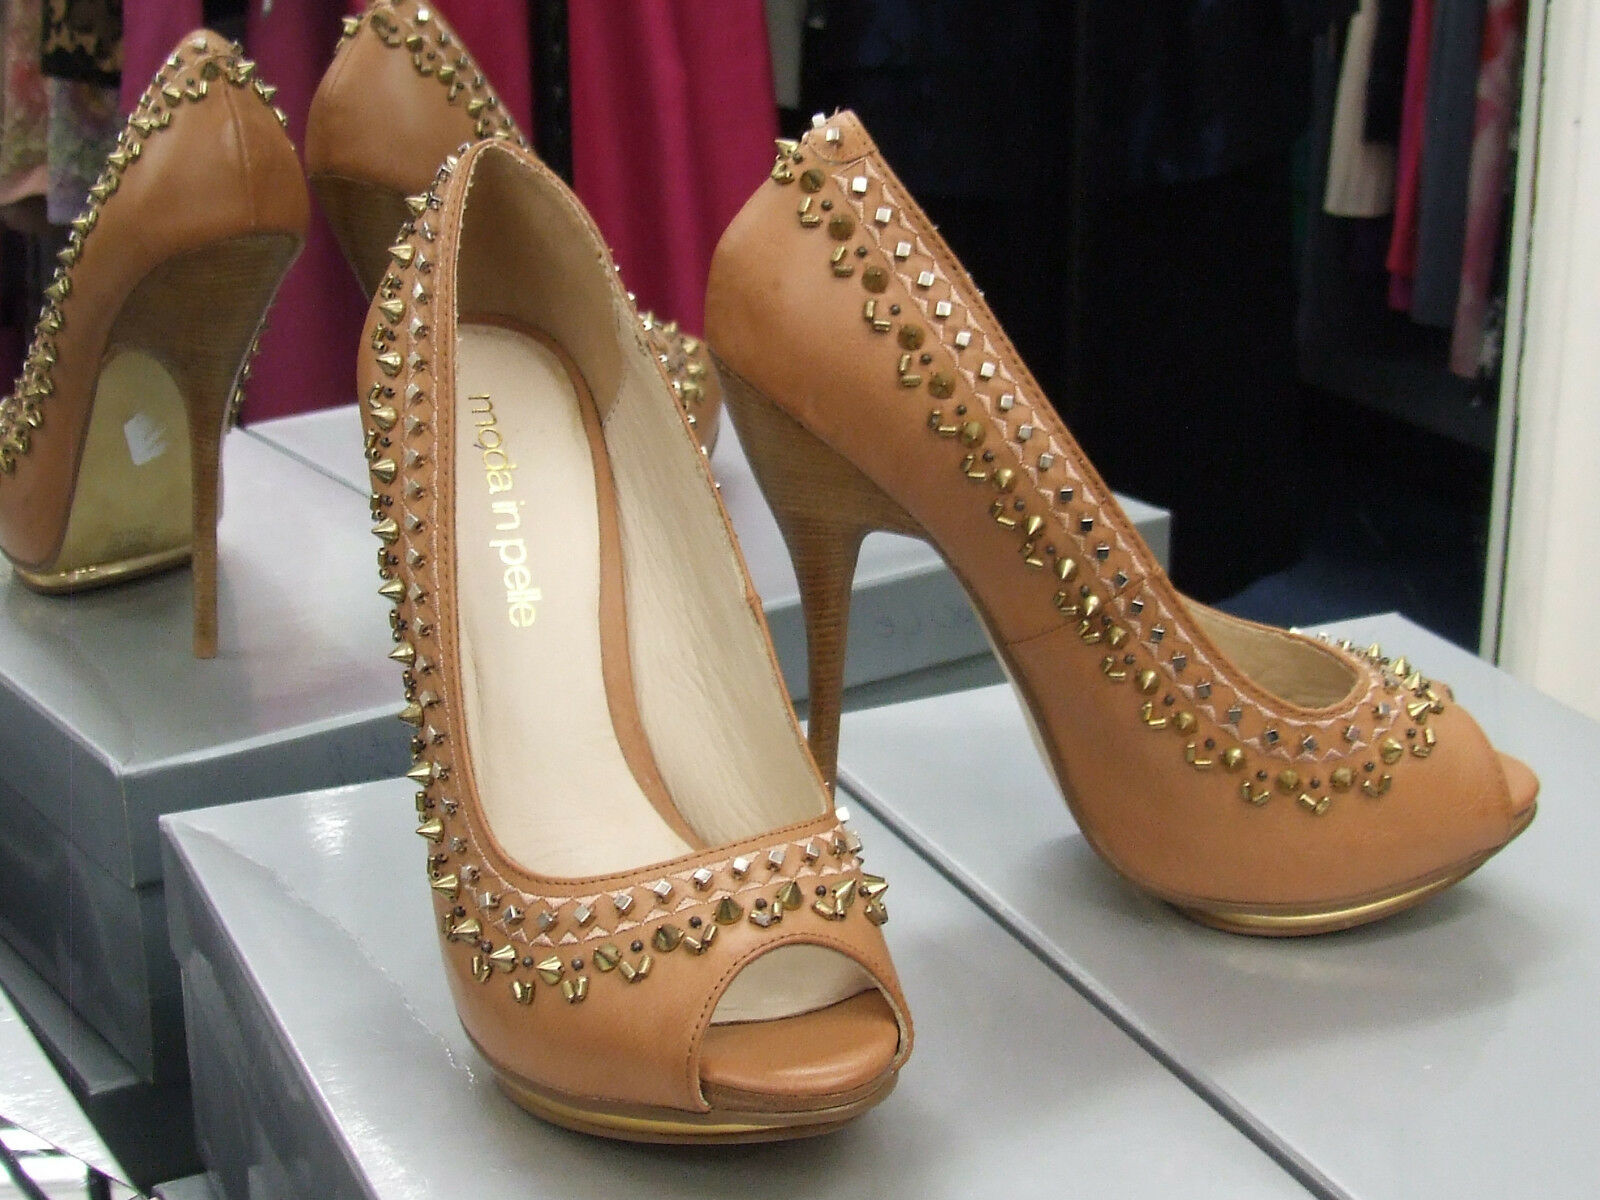 Moda In Pelle BNIB UK 5 Gorgeous High Gold Heel Tan Shoes wth Gold High Spikes+Studs EU 37 5c6eef